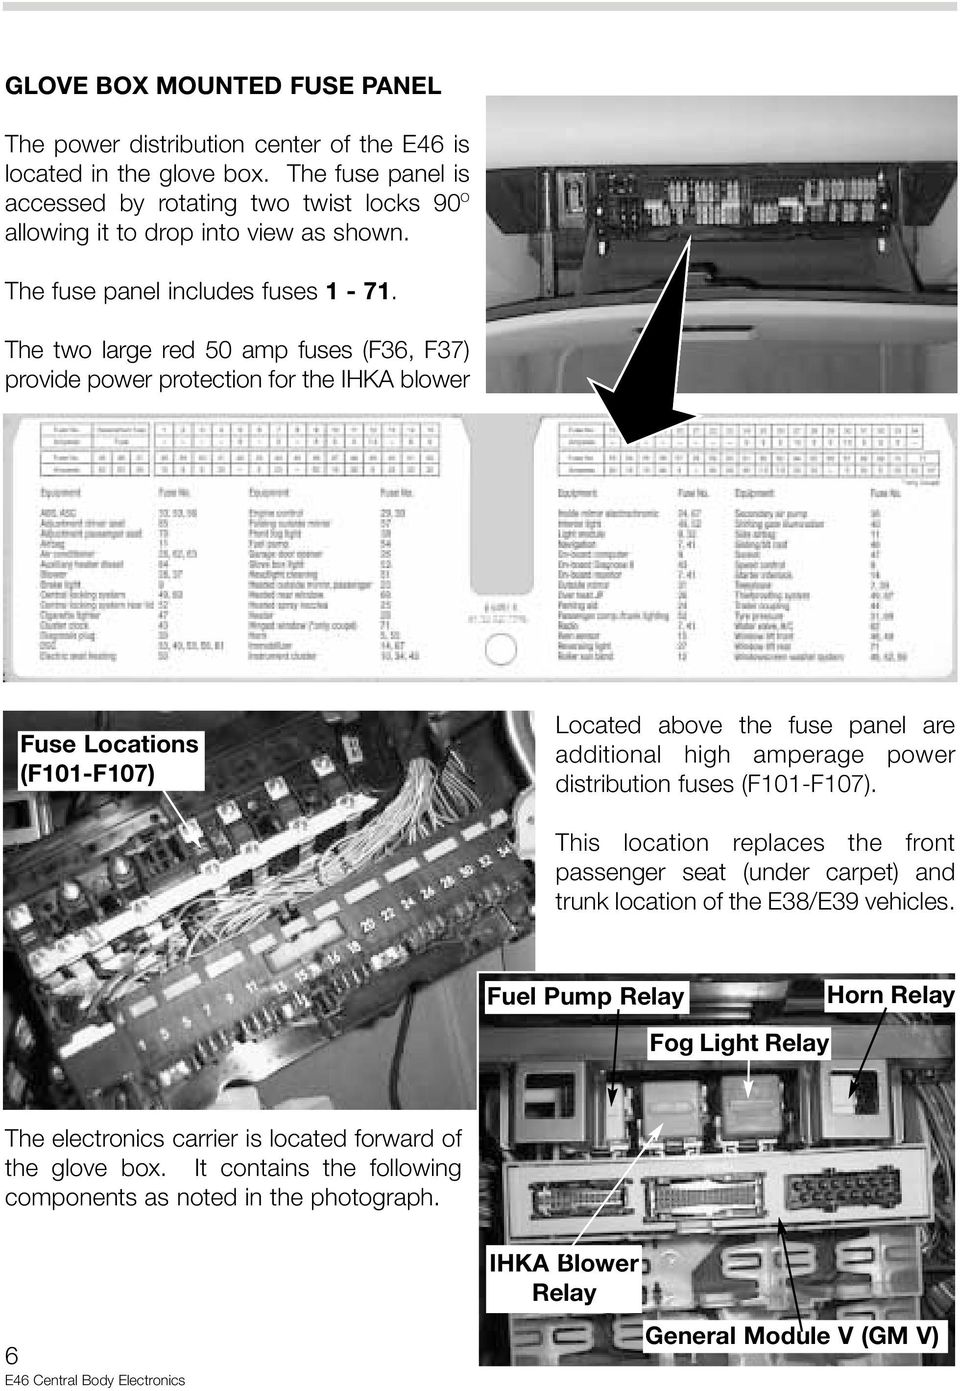 E46 Central Body Electronics Pdf Bmw Locking Wiring Diagram The Two Large Red 50 Amp Fuses F36 F37 Provide Power Protection For